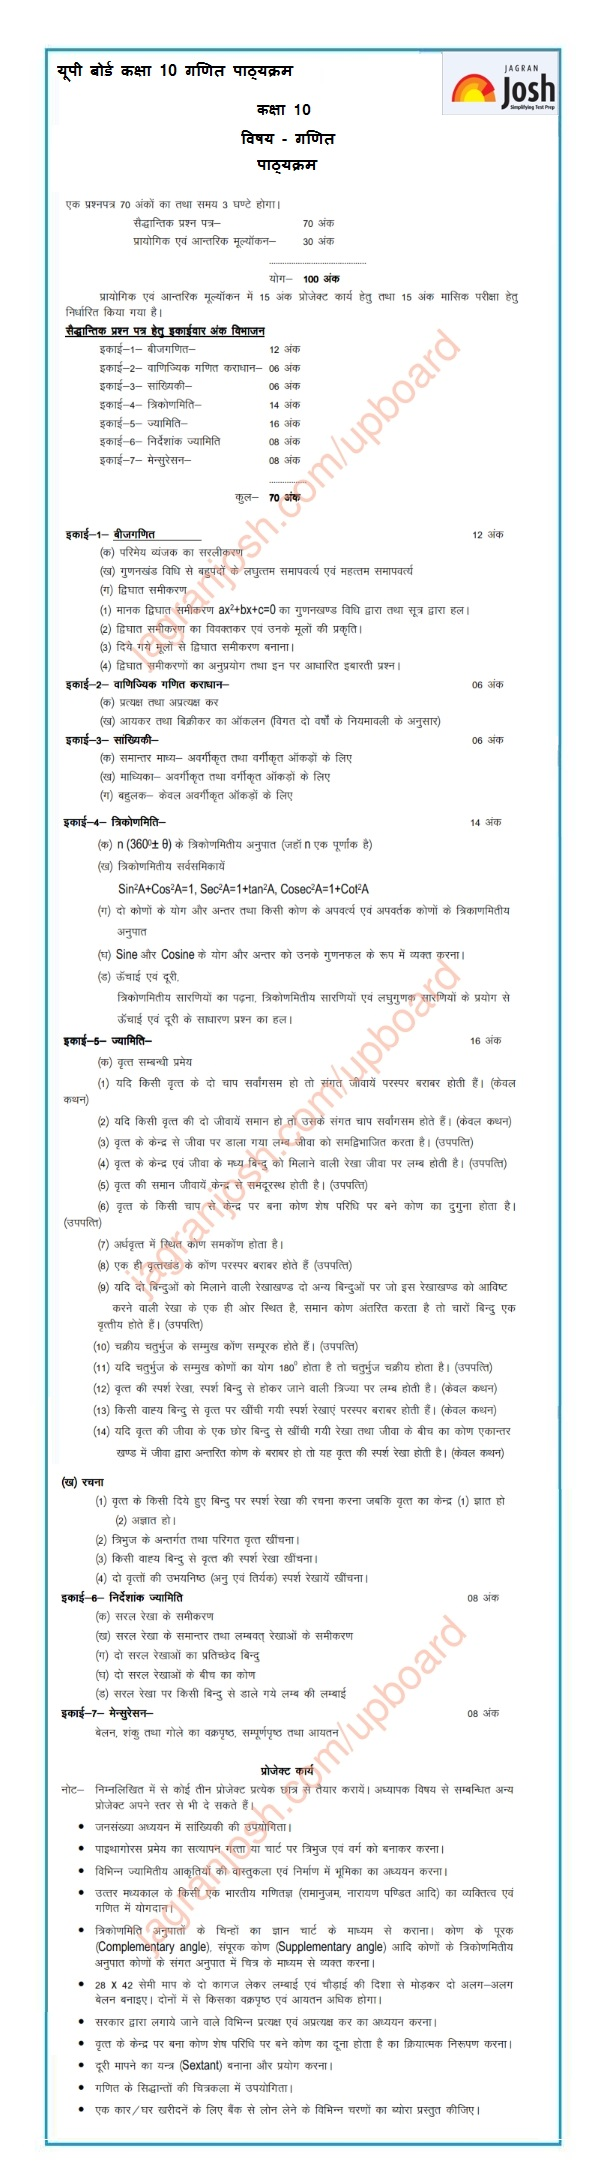 Blueprint of maths for class 12 mp board mp board 10th rbse books blueprint of question paper of class malvernweather Images